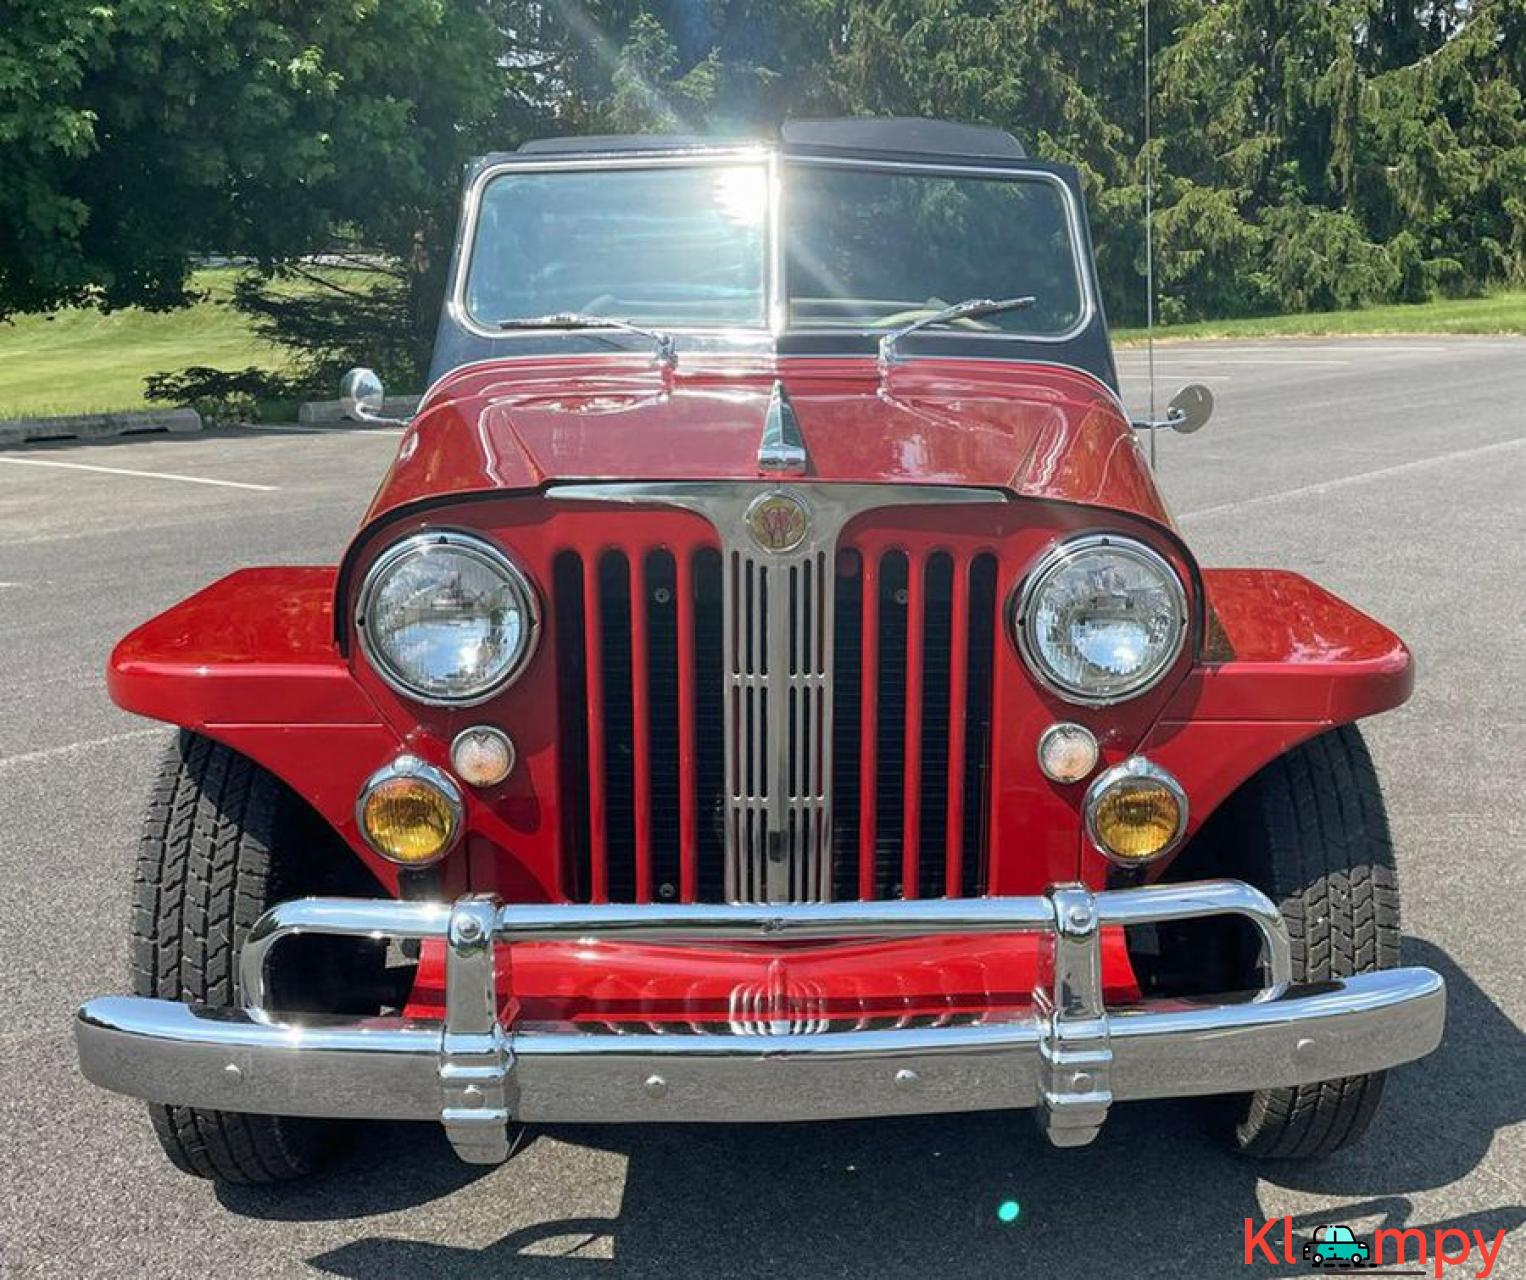 1948 Willys Jeepster Convertible GM 2.5 liter 4 cyl - 12/16